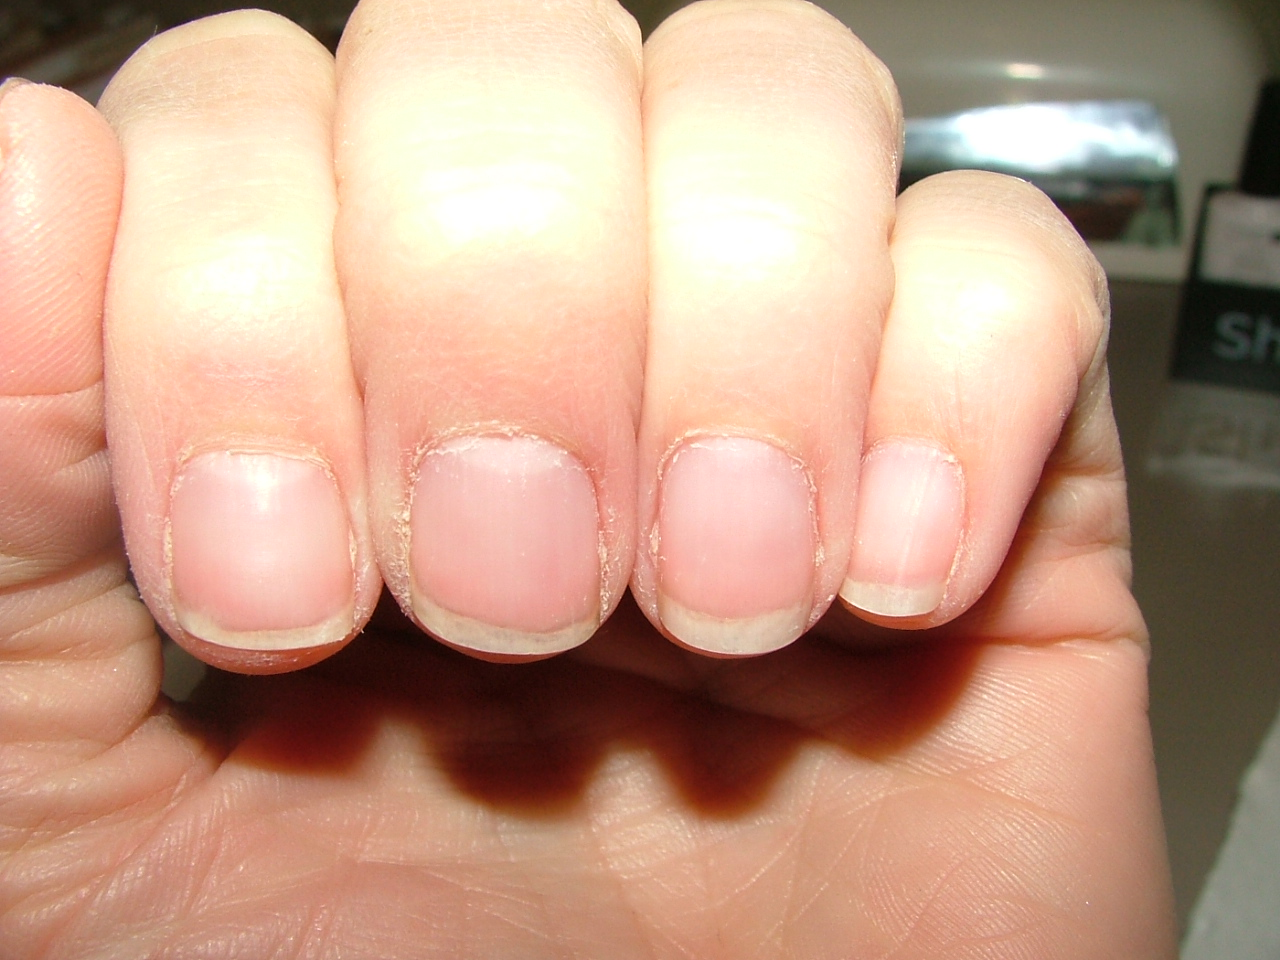 I Will Show A Pic Of My Nails Directly After Removing Shellac You Can See Sidewalls Are Very Dry In This DO Solar Oil Nightly But The